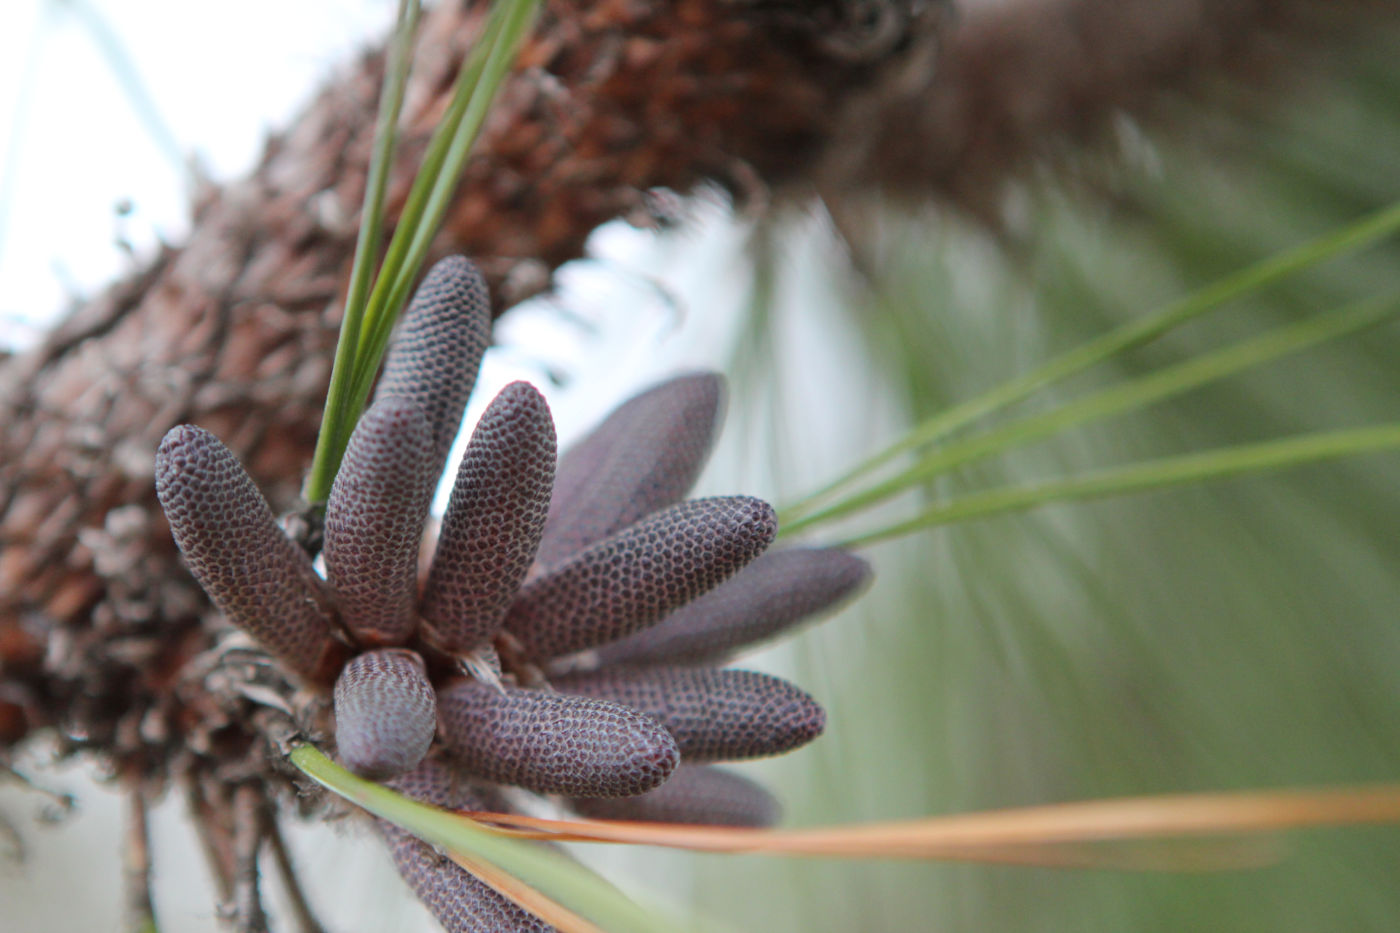 The male reproductive parts of longleaf pine